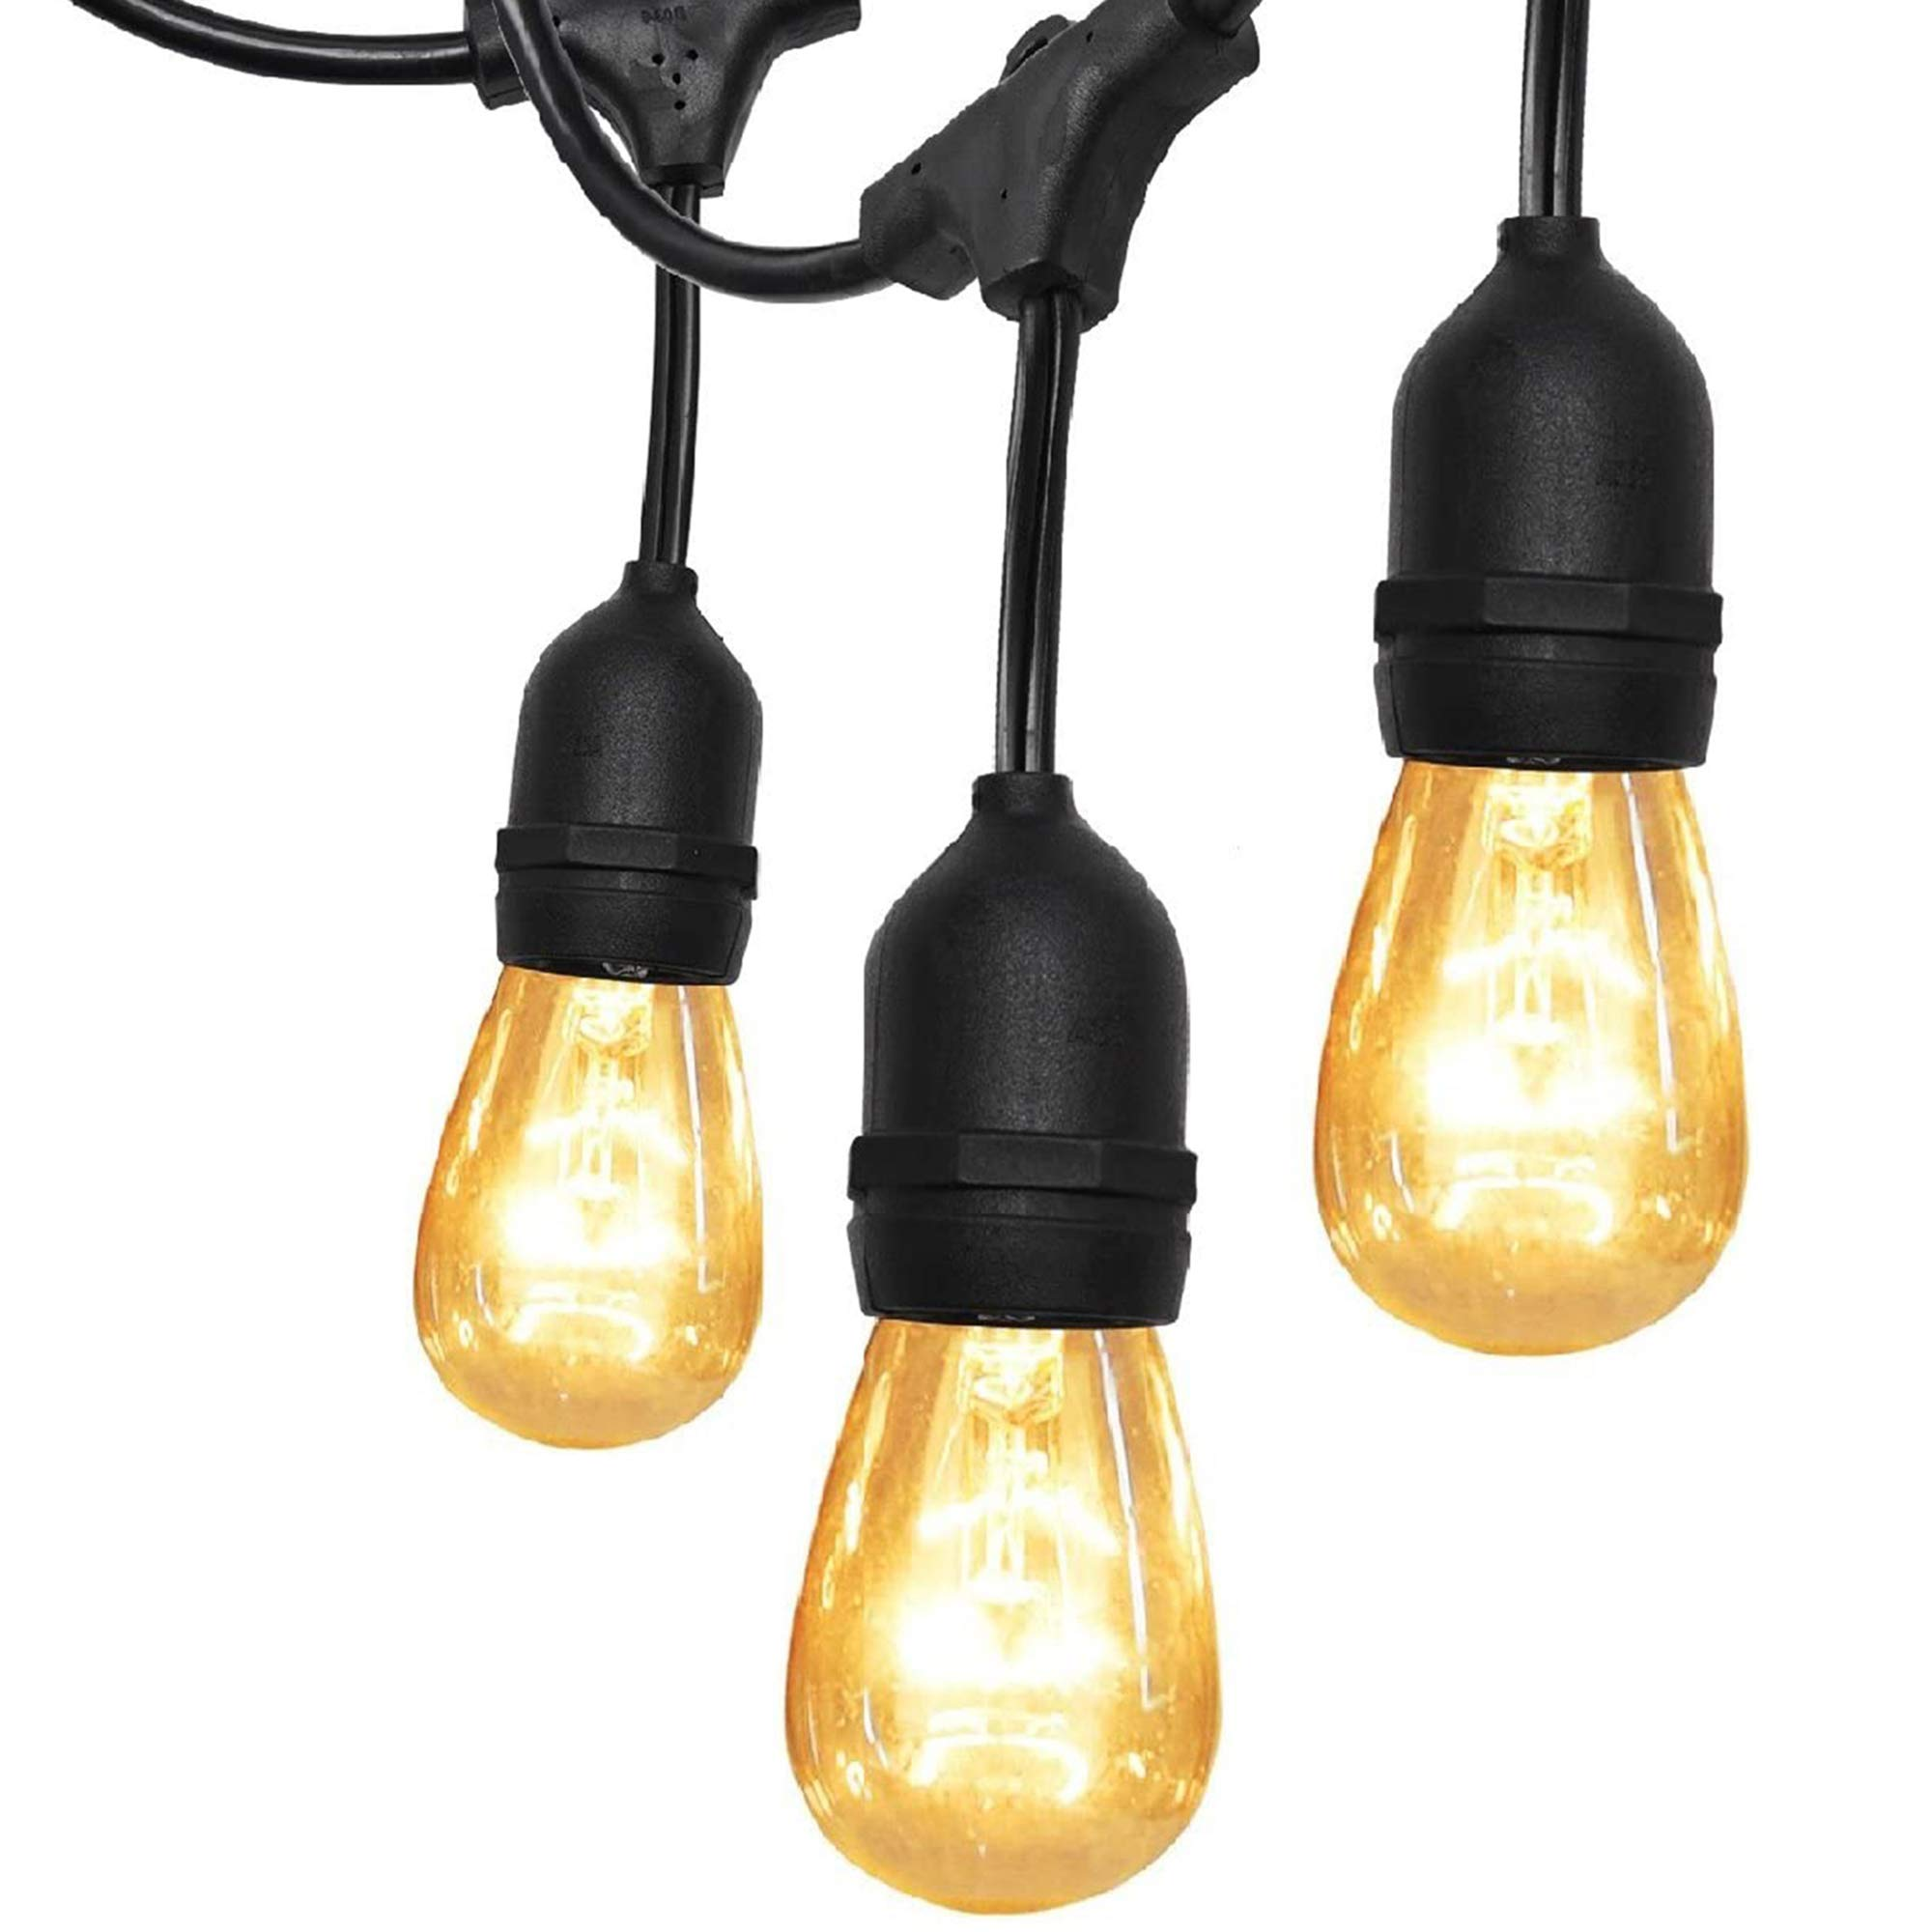 UL Approval 52FT Outdoor String Lights SUPERDANNY